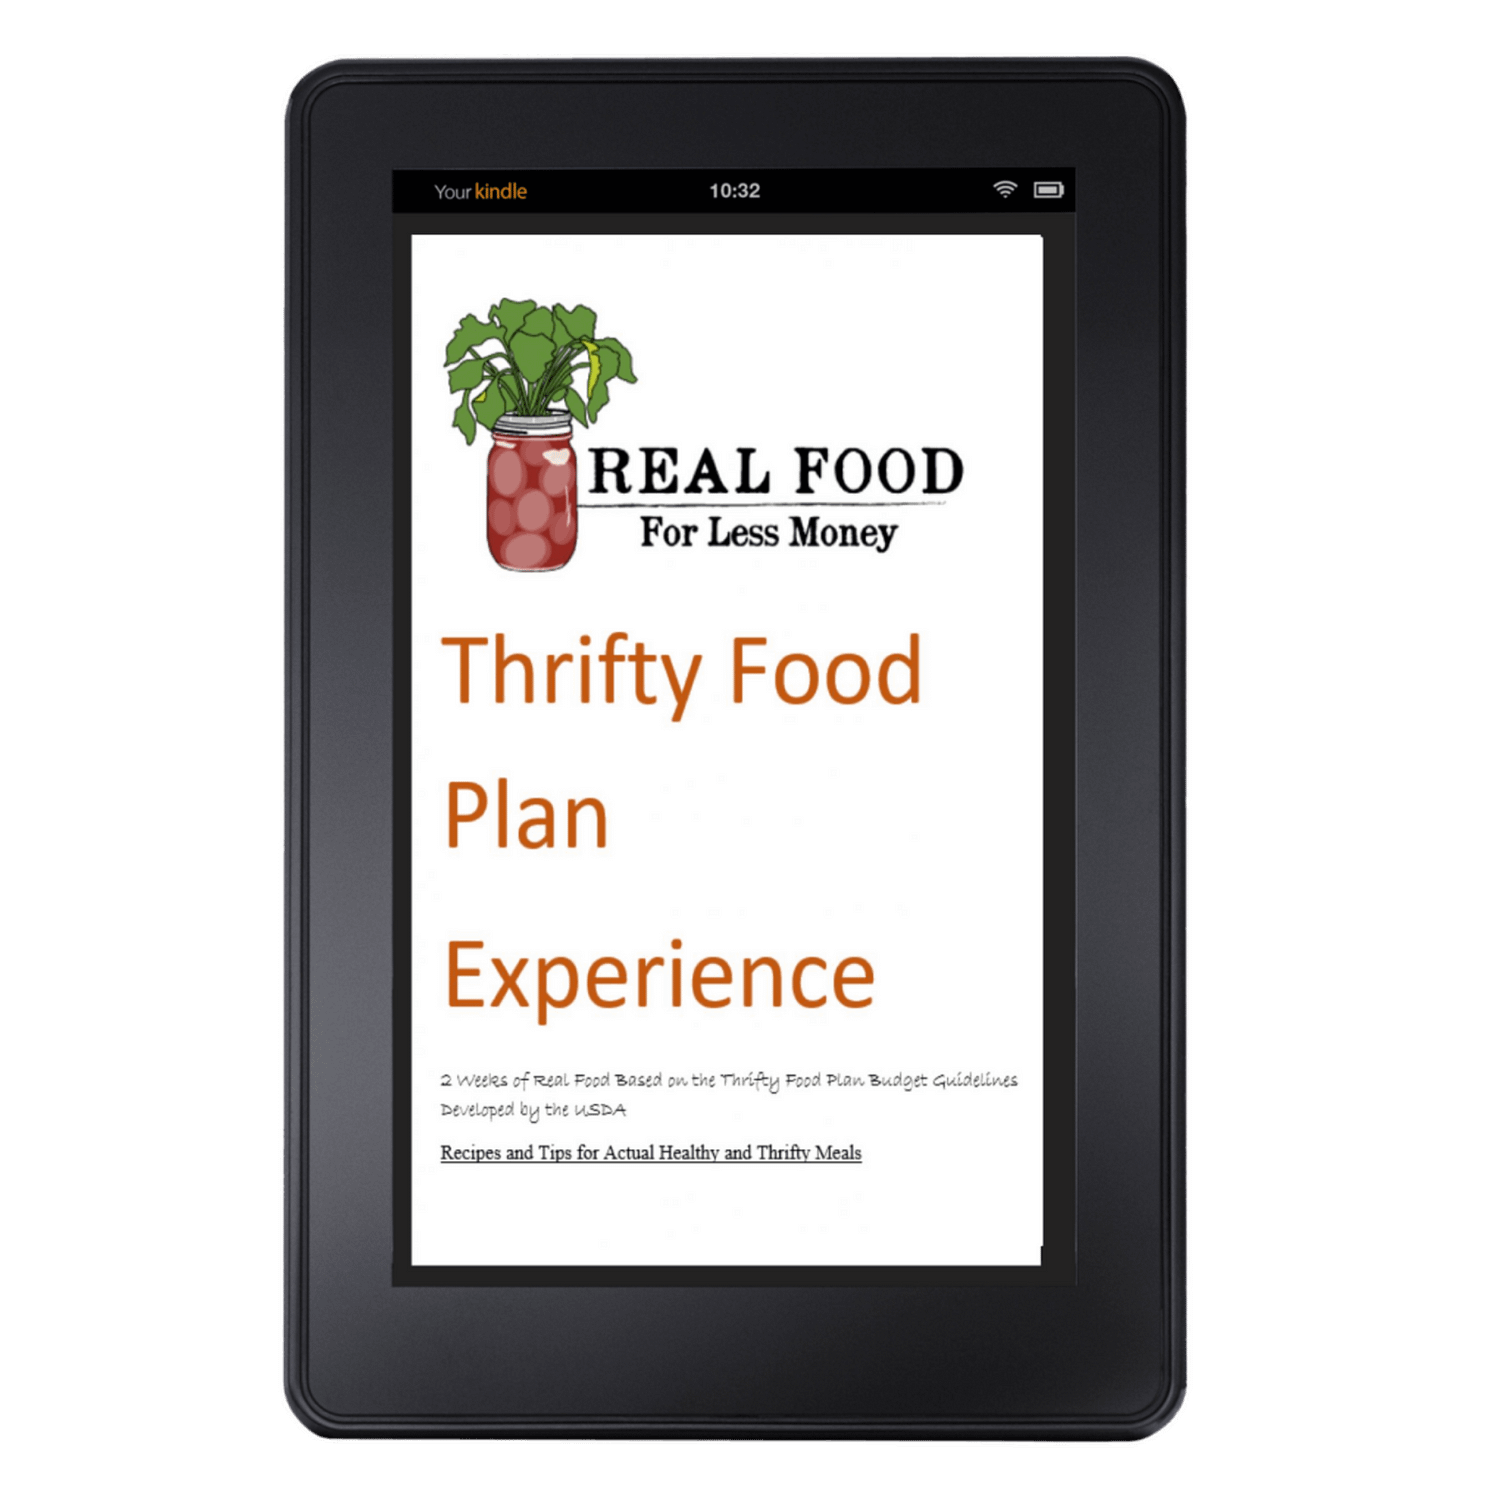 Thrifty Food Plan Experience on Kindle